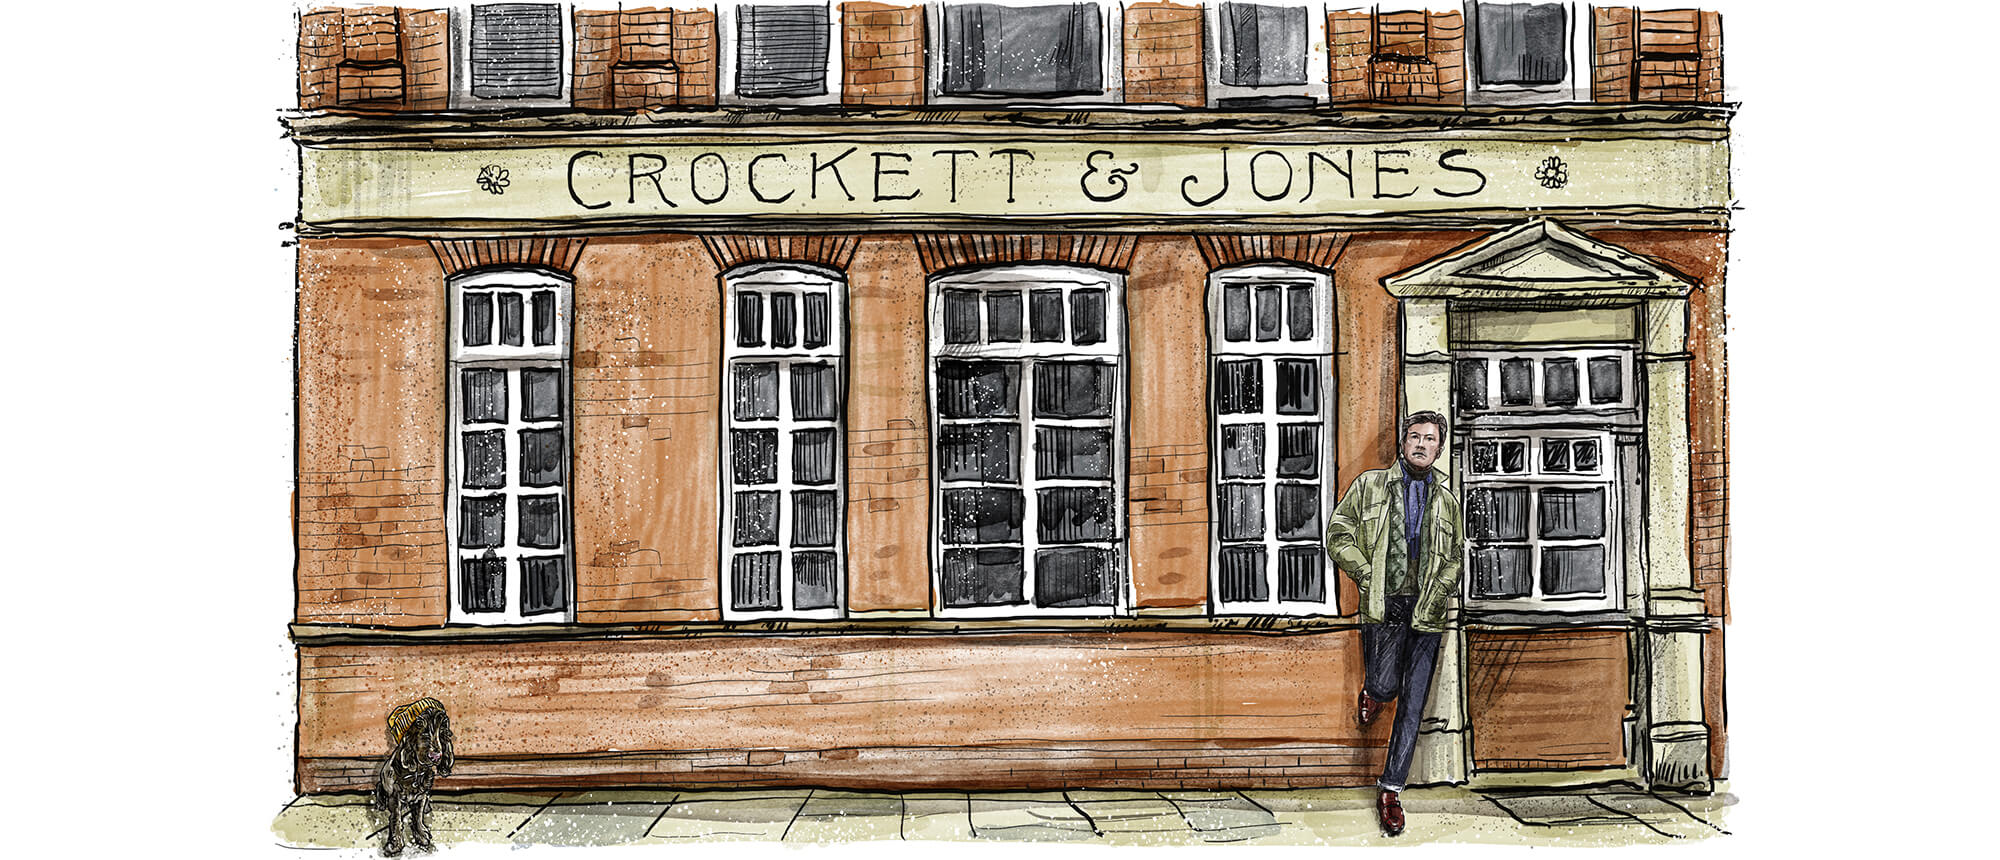 Crockett & Jones - Made in Northampton, England.